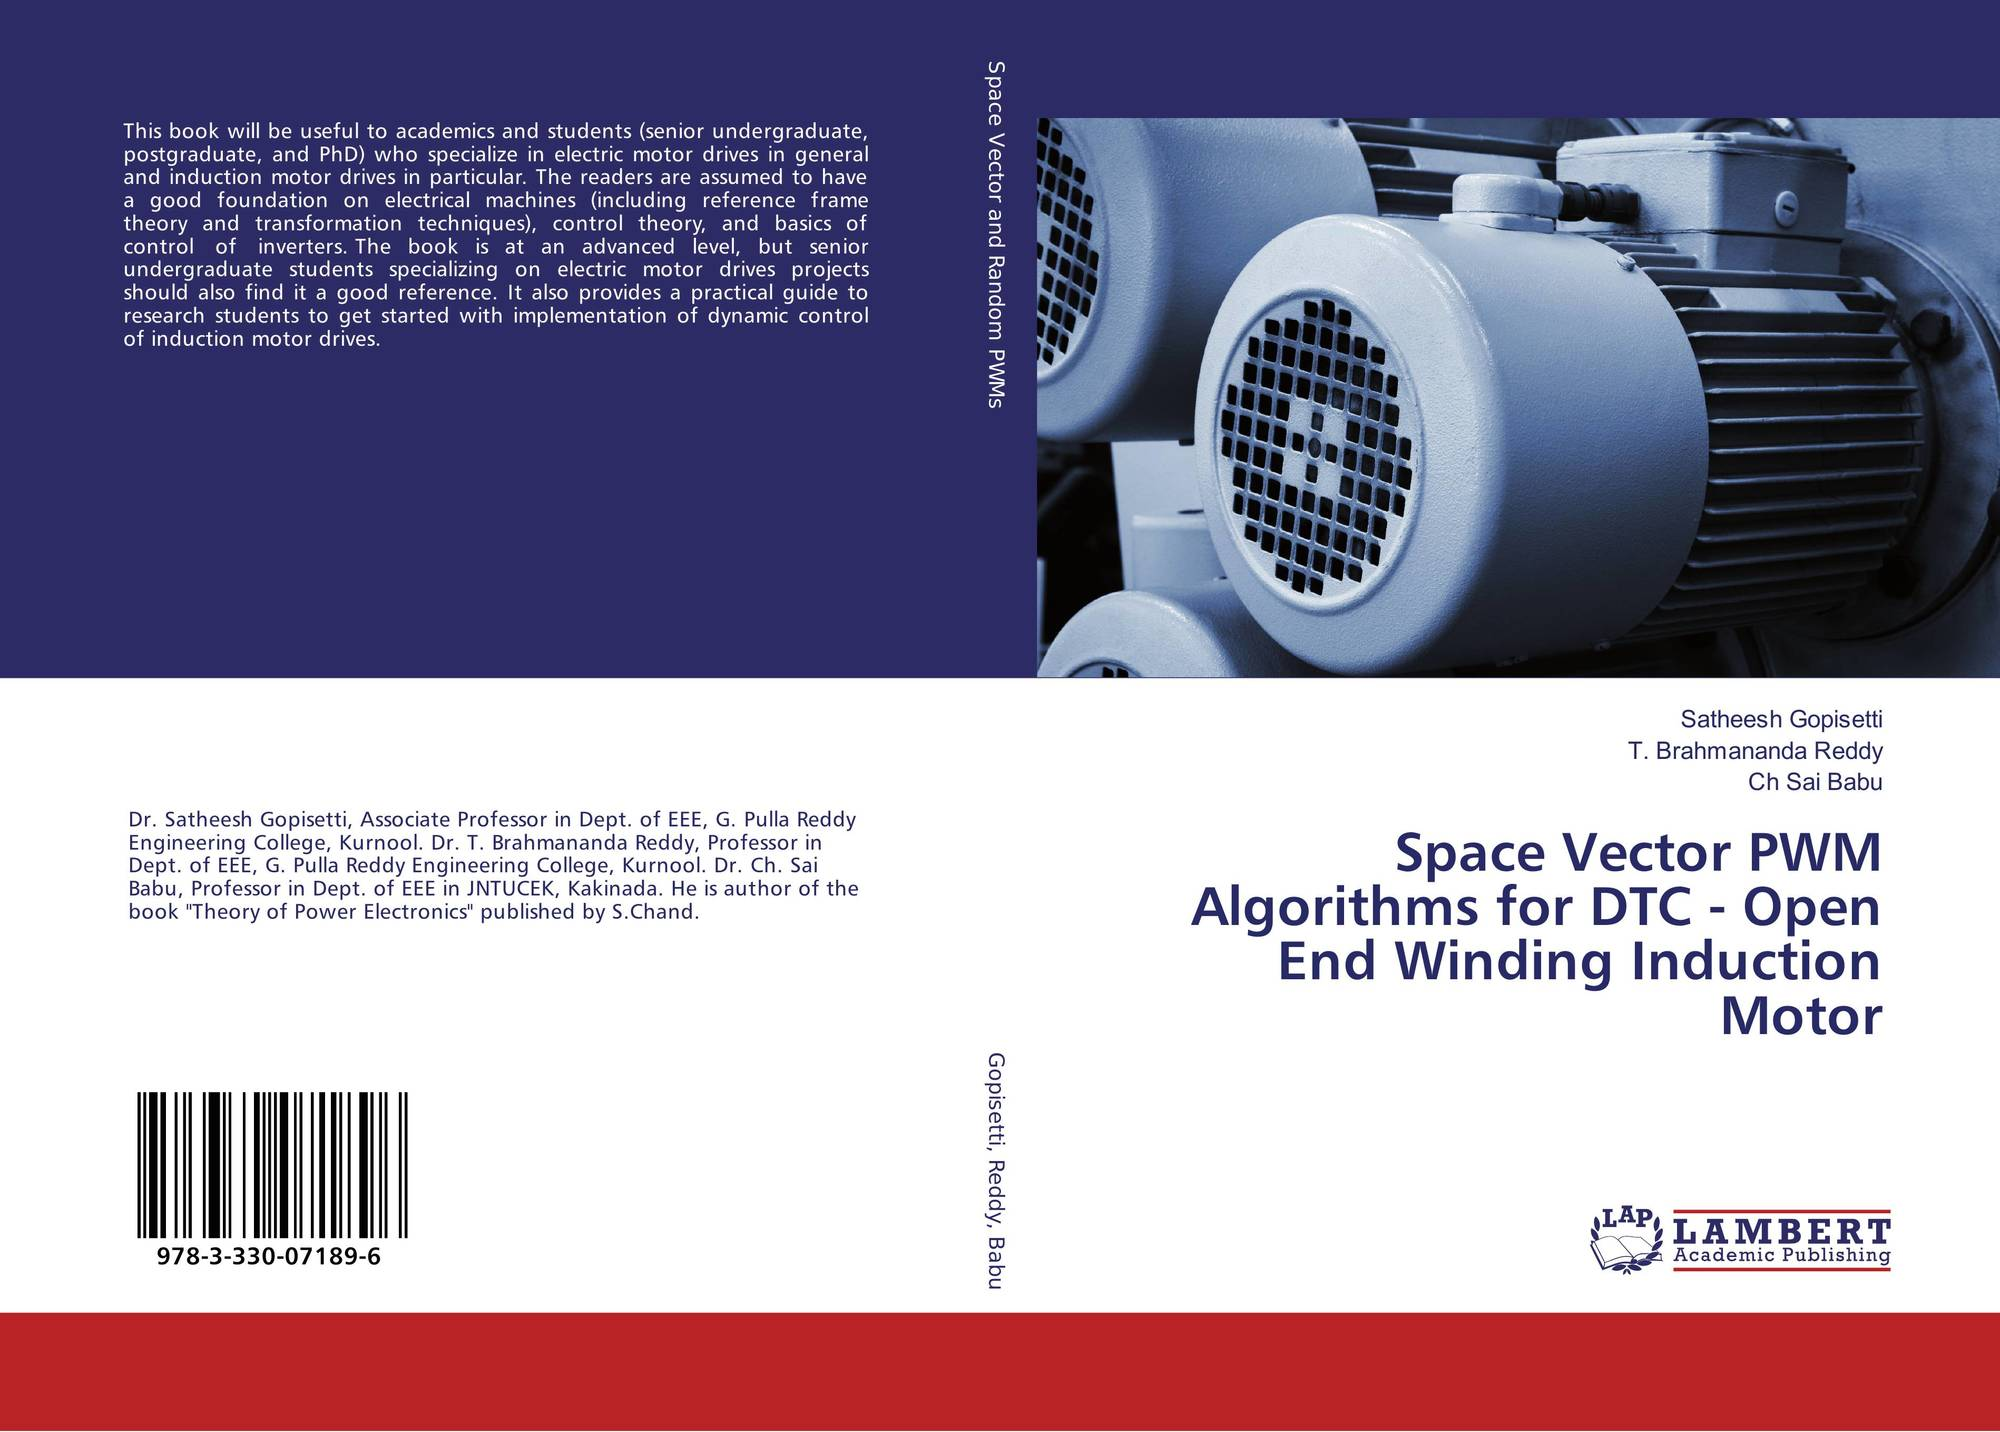 Space Vector PWM Algorithms for DTC - Open End Winding Induction ...